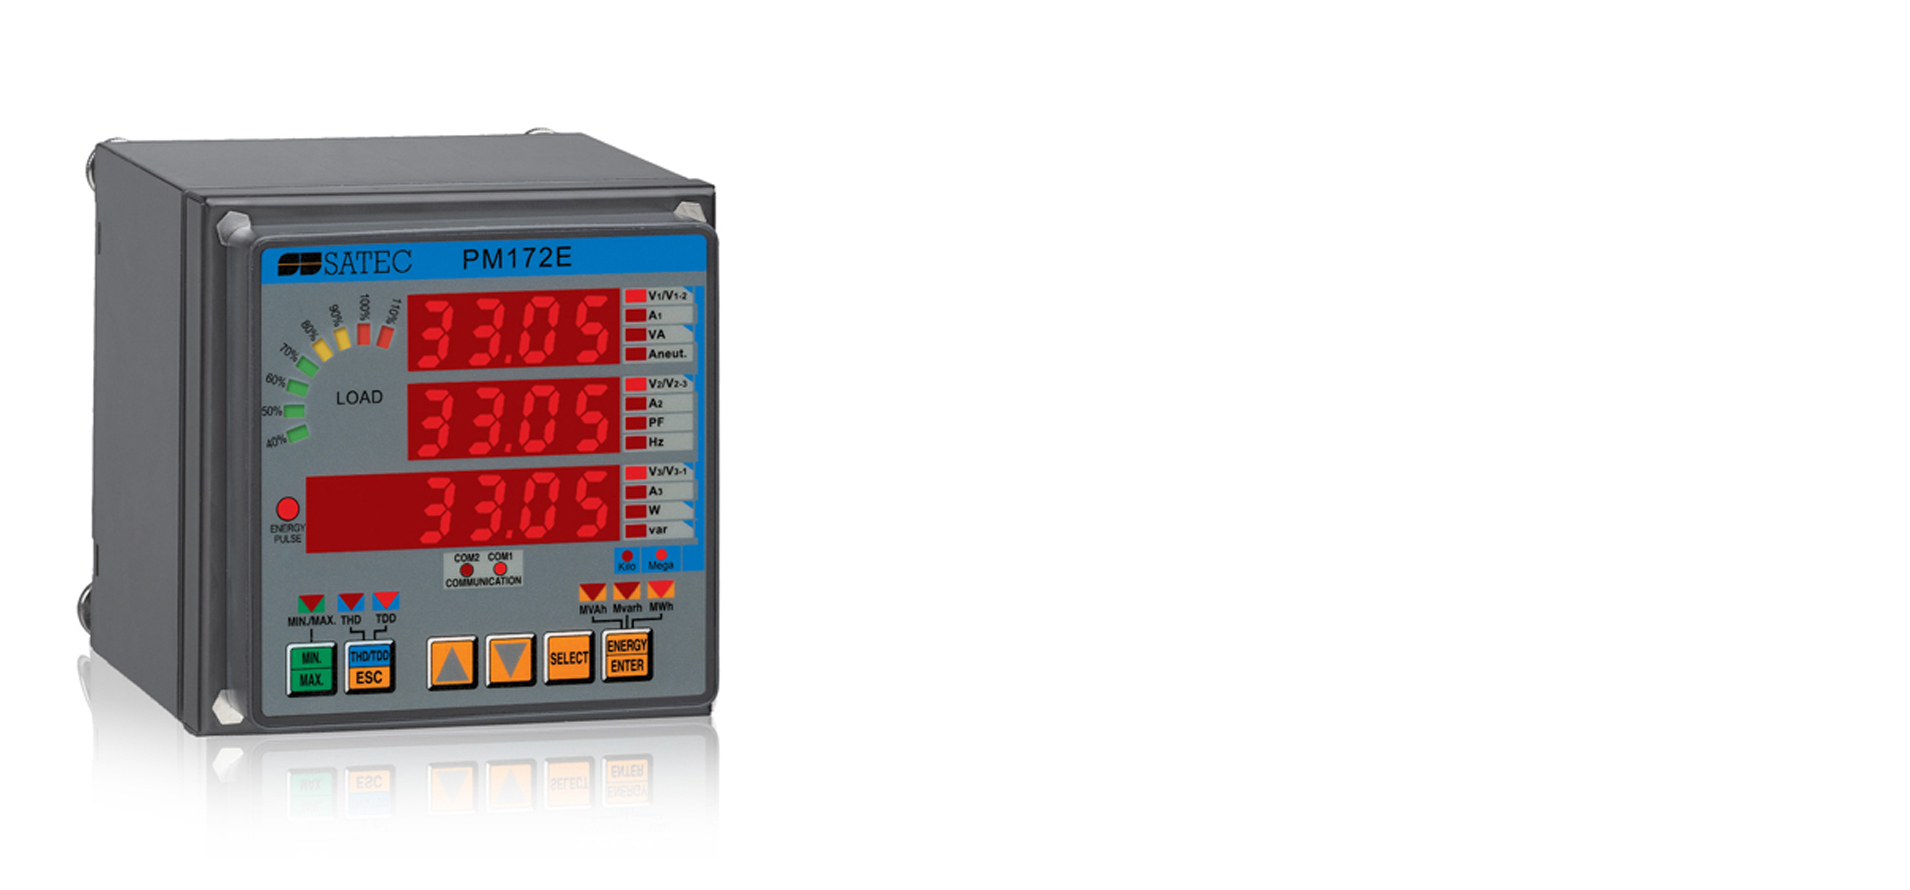 The PM172 is a high performance feeder monitoring instrument that includes revenue class measurements and logging capability.